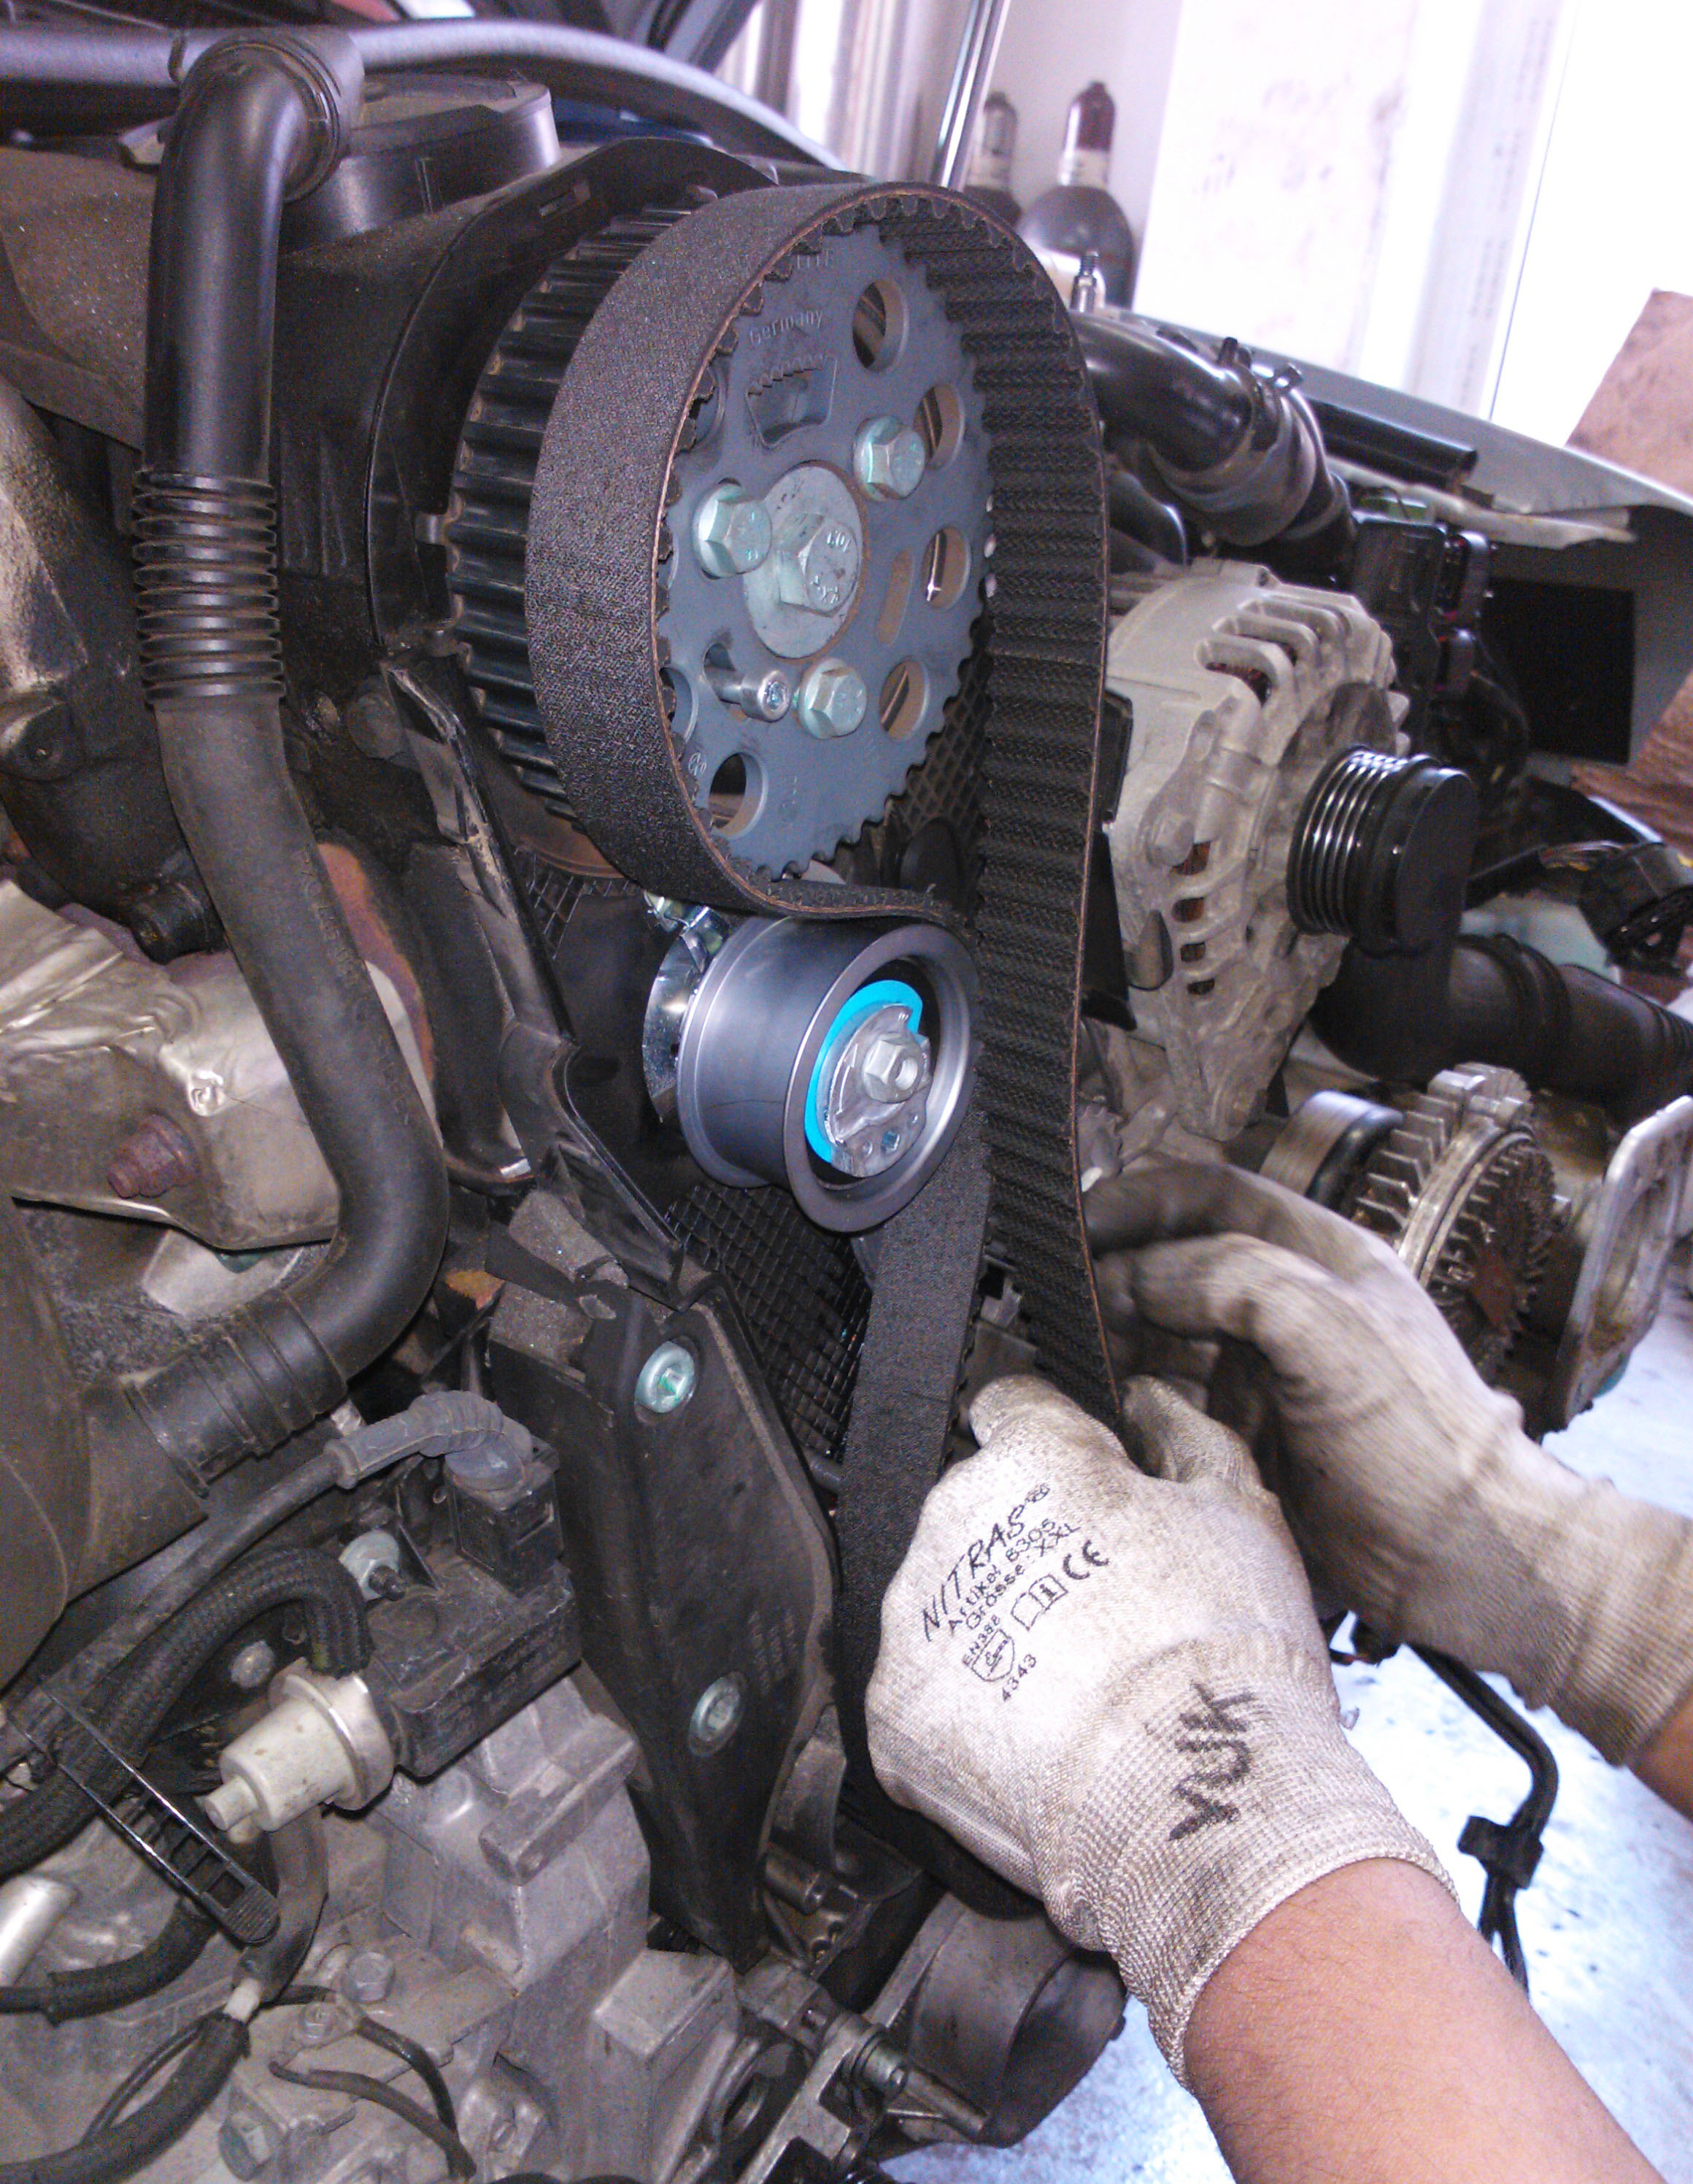 D Vtec Bogging Out K Honda Rebuild likewise Vo Bcrank B Btriple B likewise Aaa furthermore Main Qimg E Efeeecab B Eea Ccc Ff in addition Distributieriem Vervangen. on 2000 honda accord crank sensor location